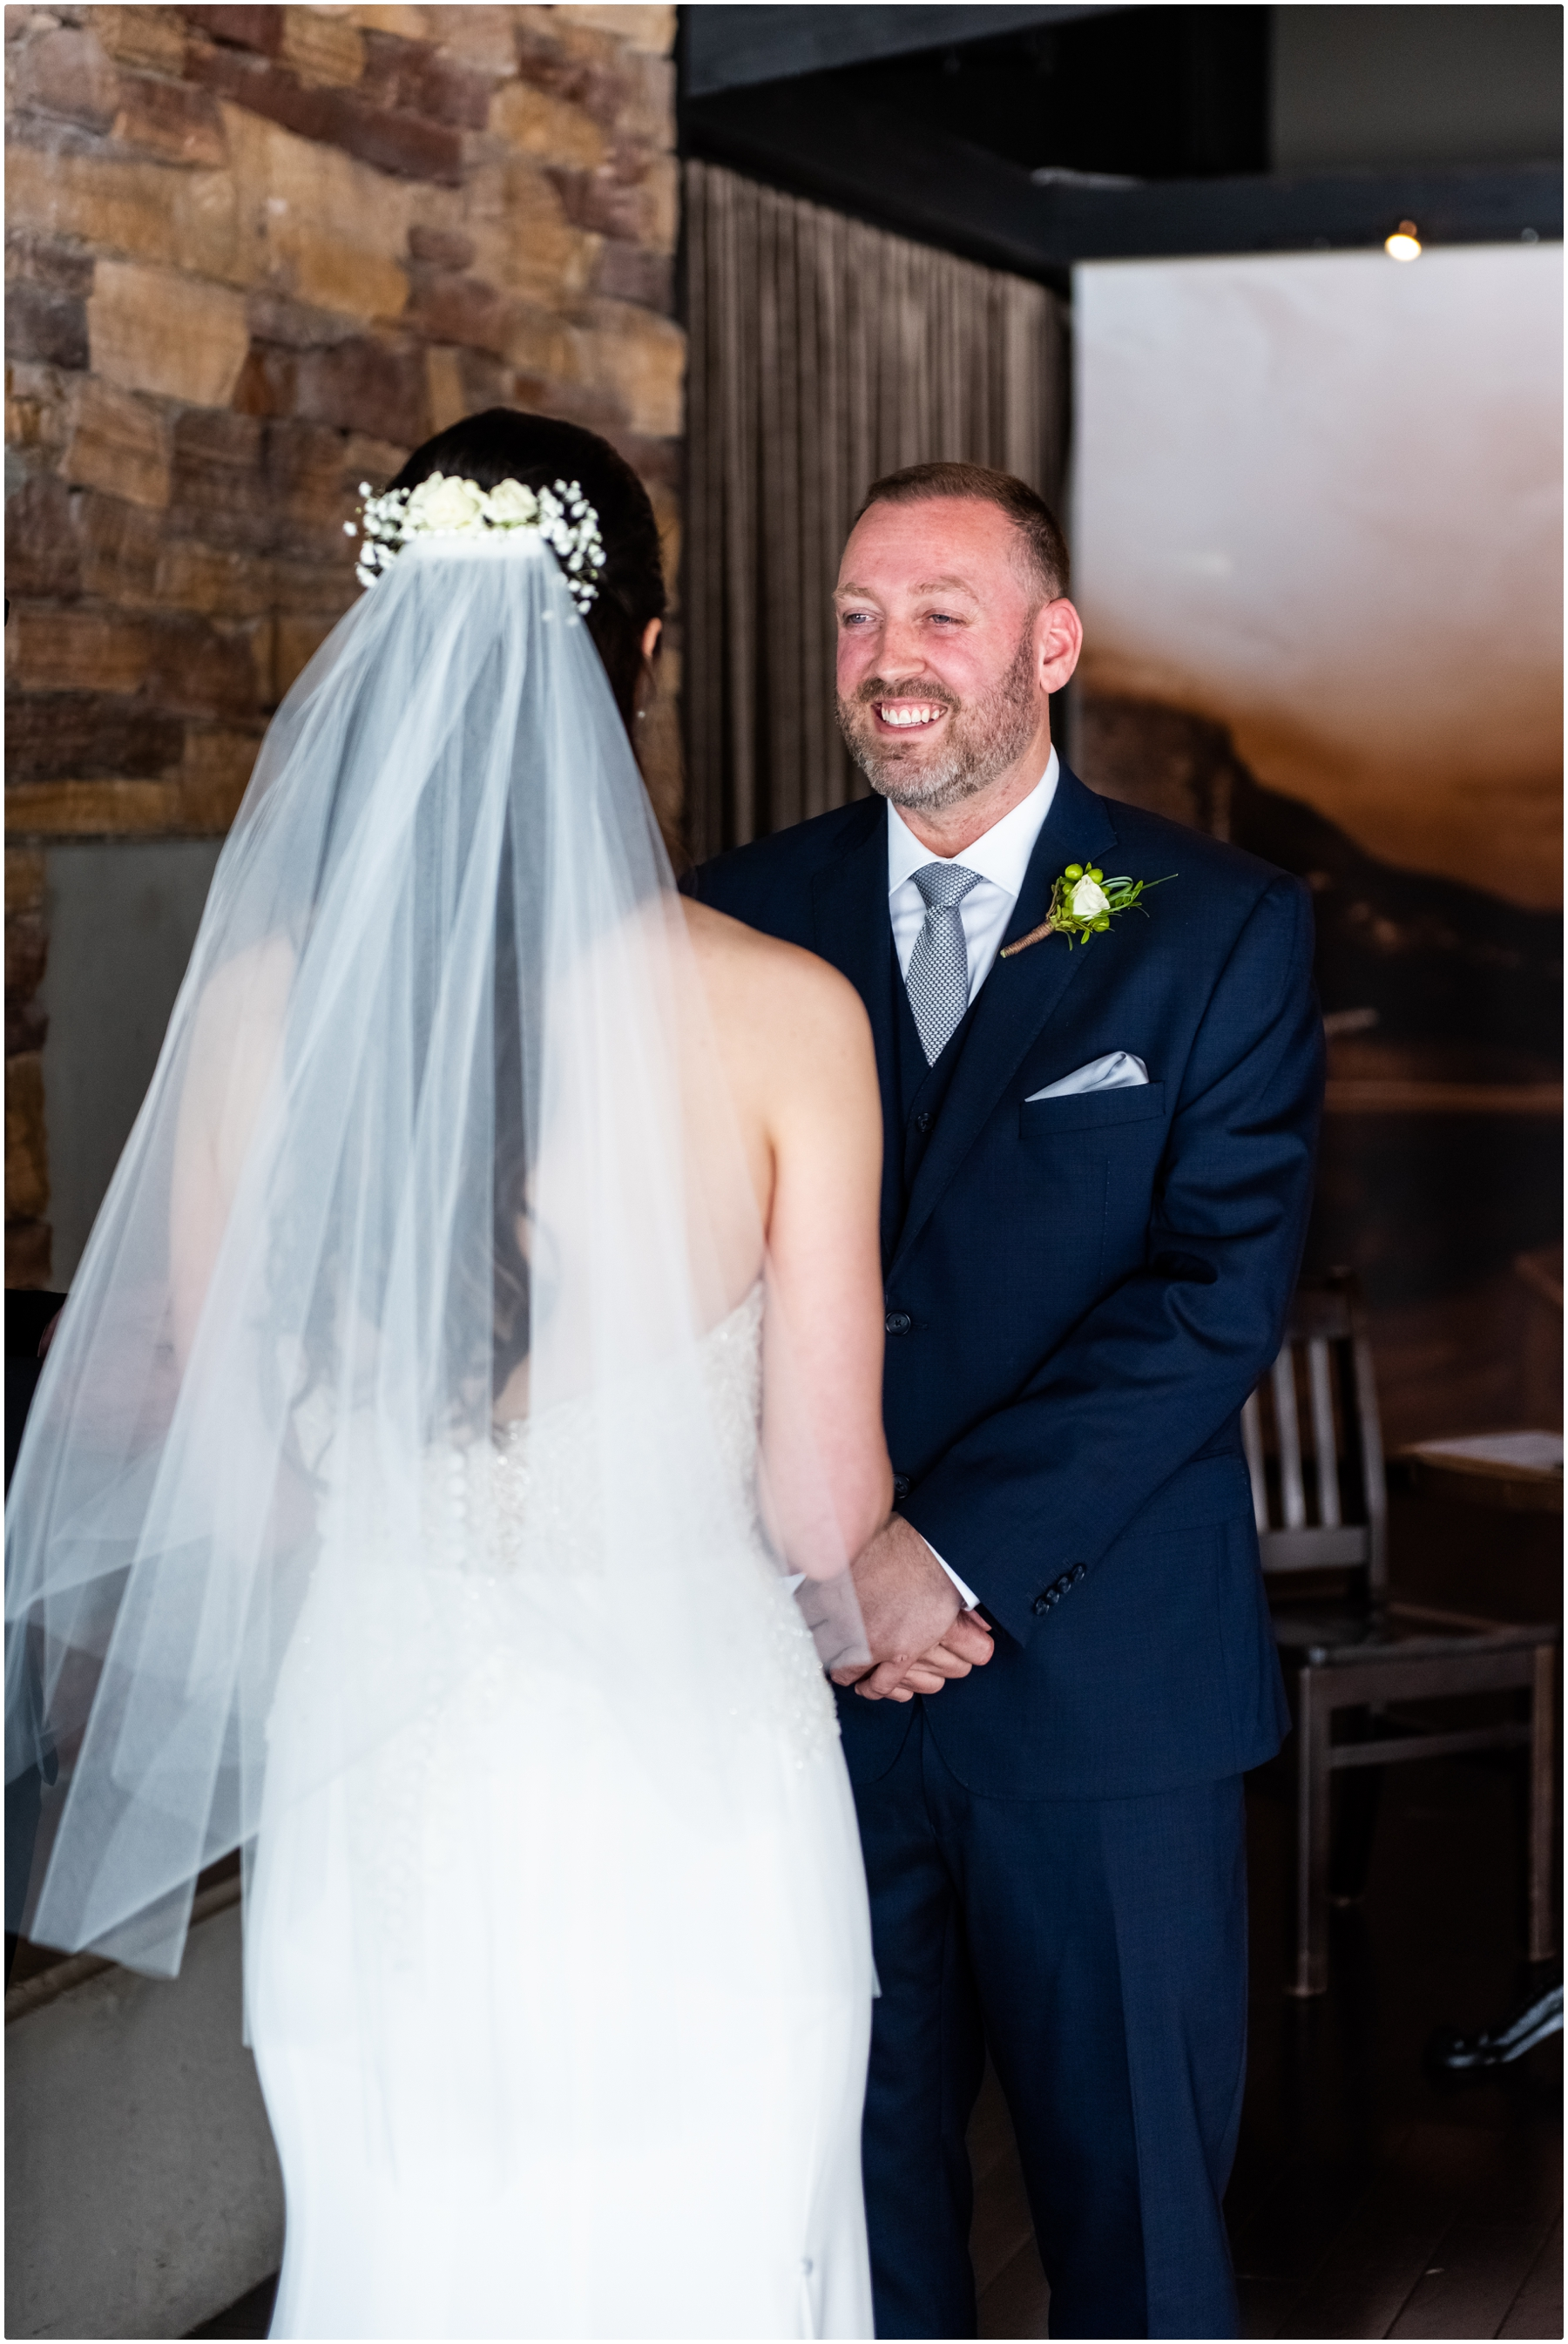 Calgary The Lake House Restaurant Micro Wedding Ceremony Photographer